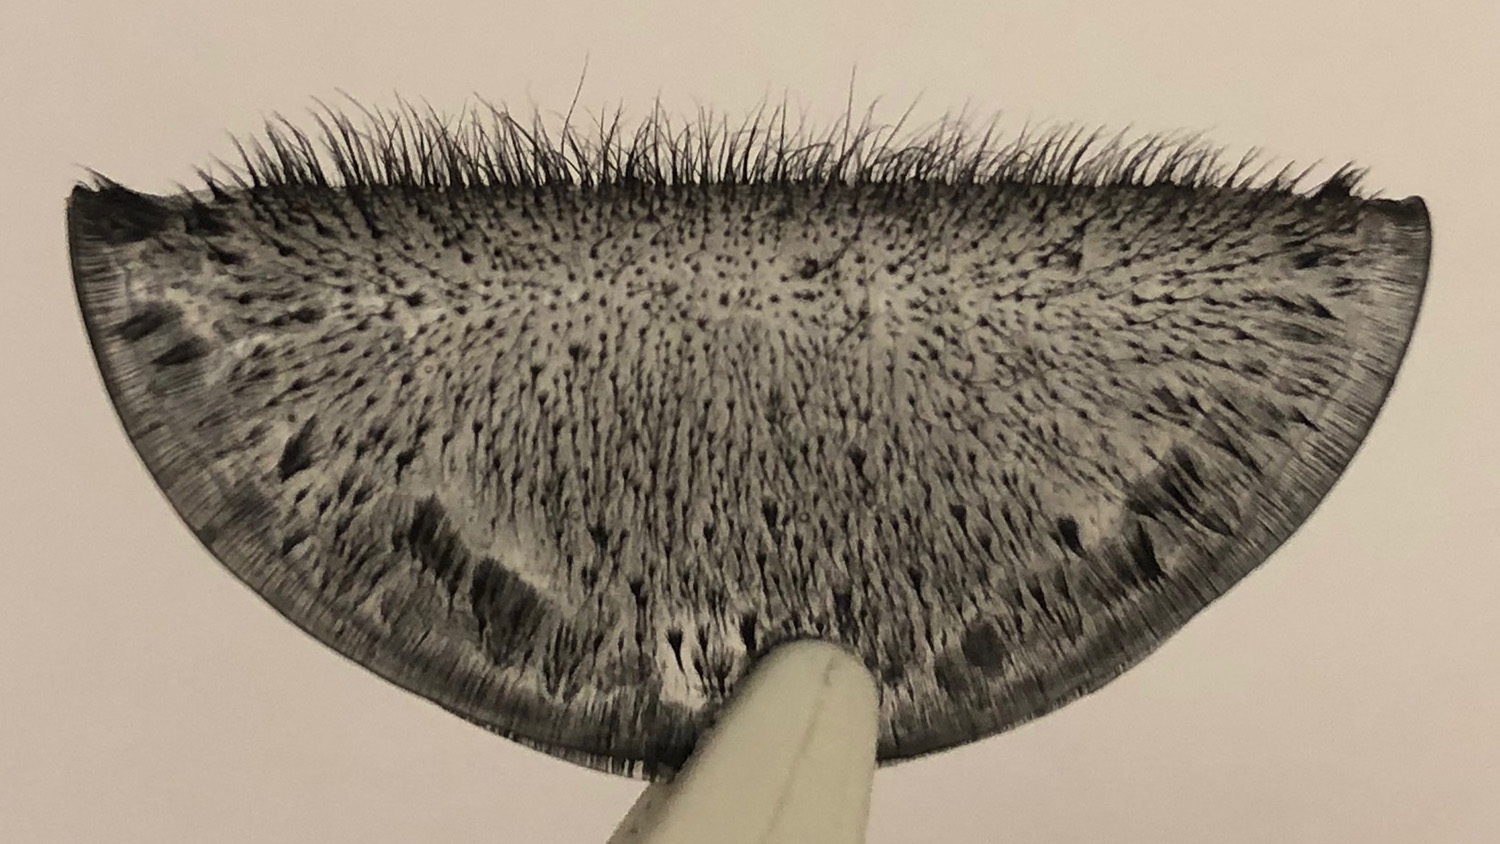 An array of magnetic cilia